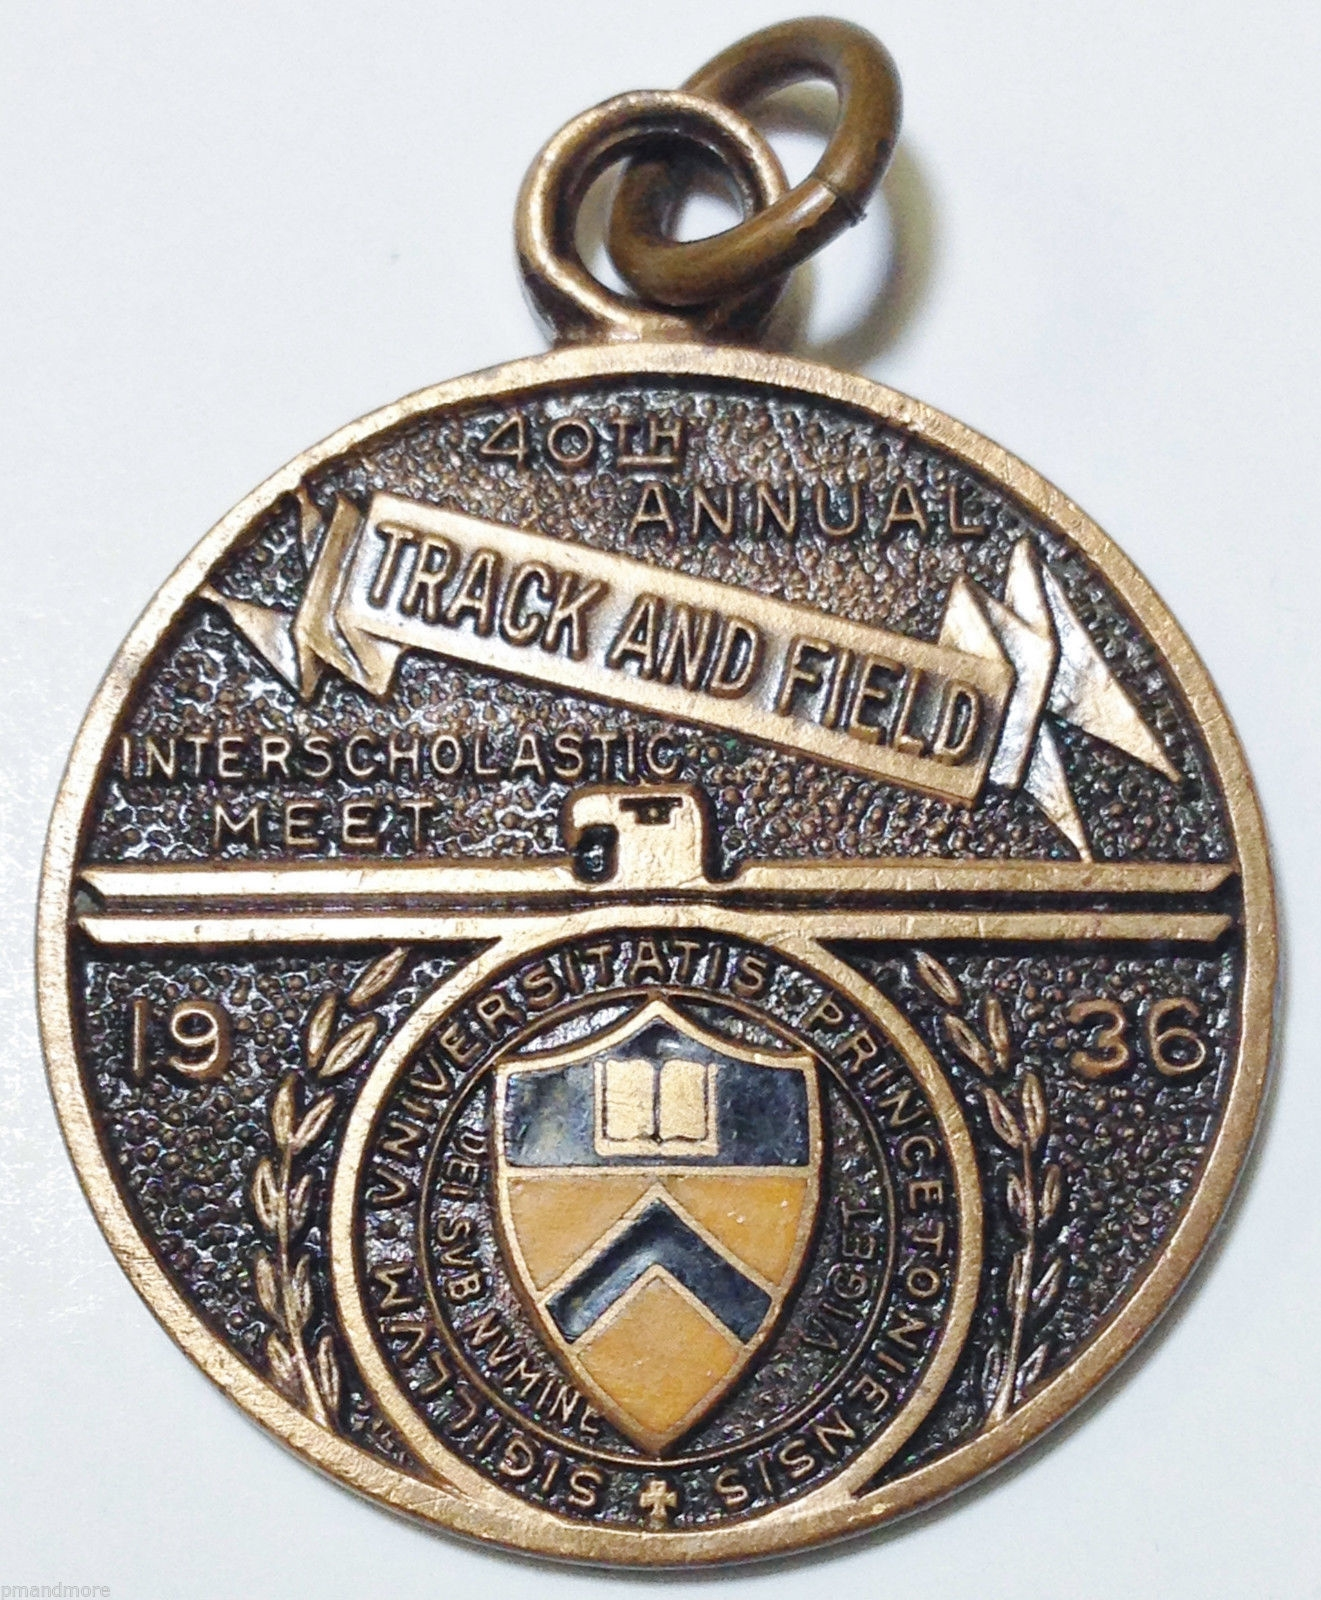 VERY RARE PRINCETON UNIVERSITY ATHLETICS 1930s TRACK & FIELD BRONZE MEDAL AWARD